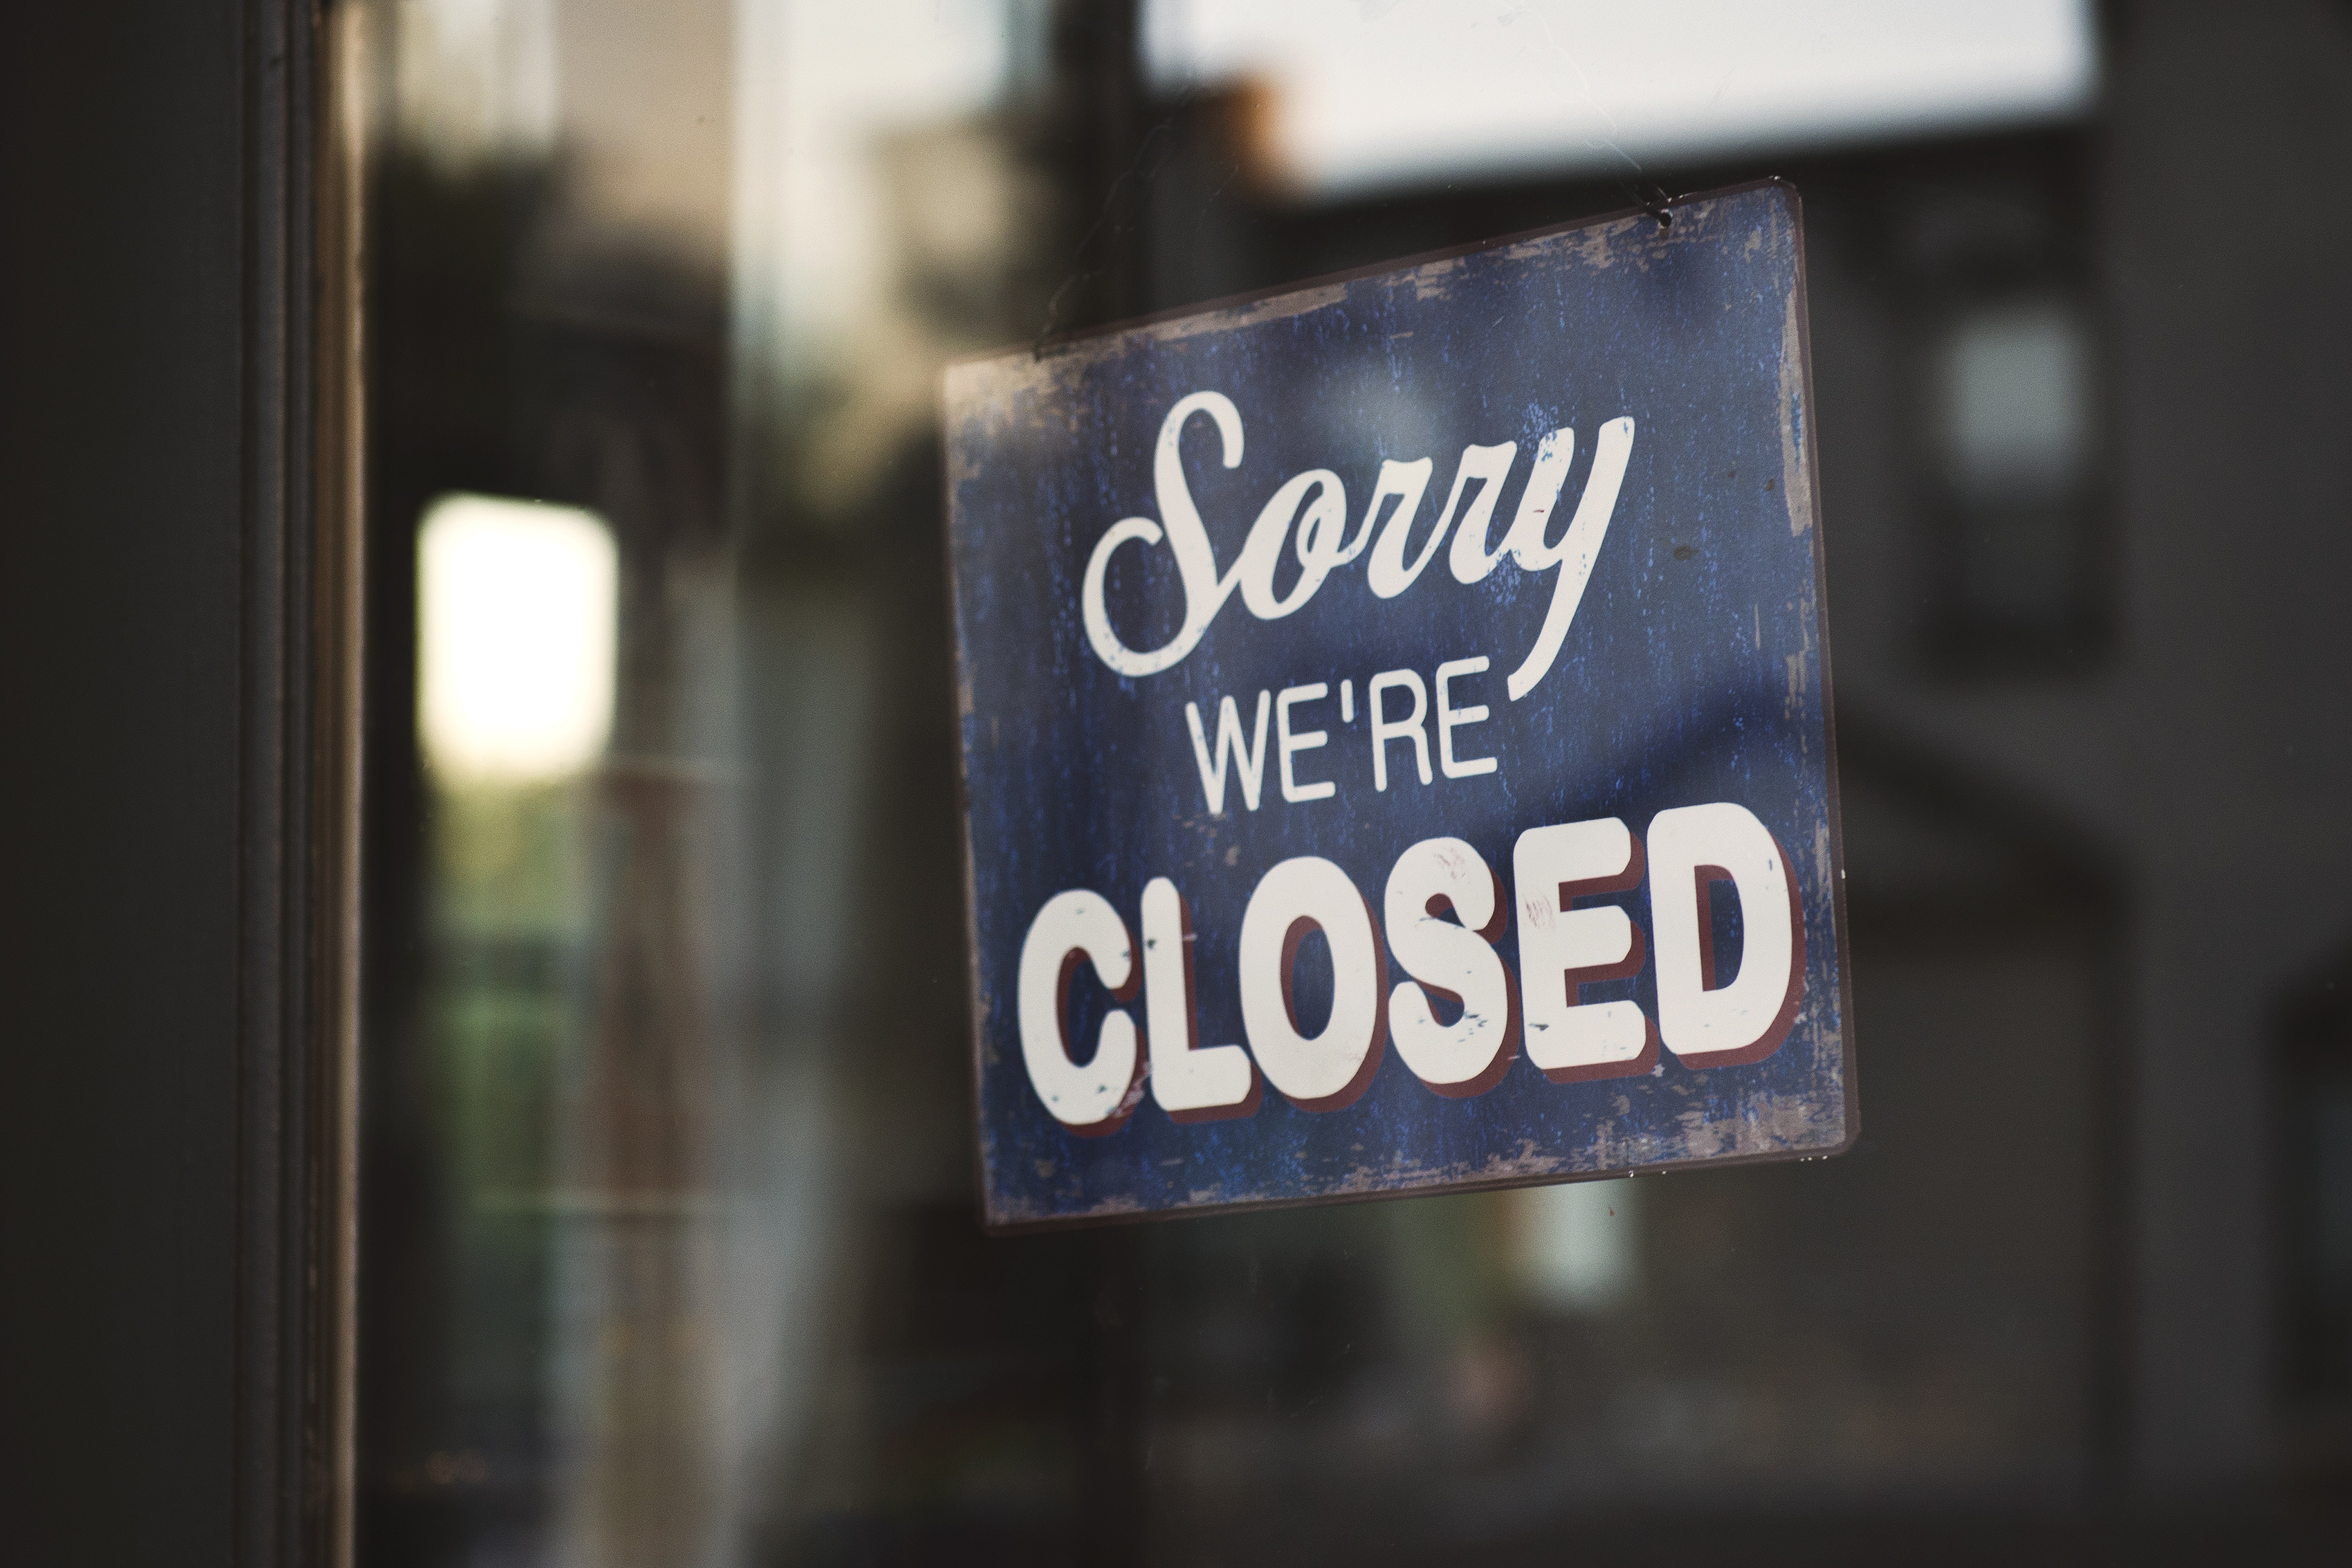 """A """"Sorry, we're closed"""" sign hanging in a store window"""